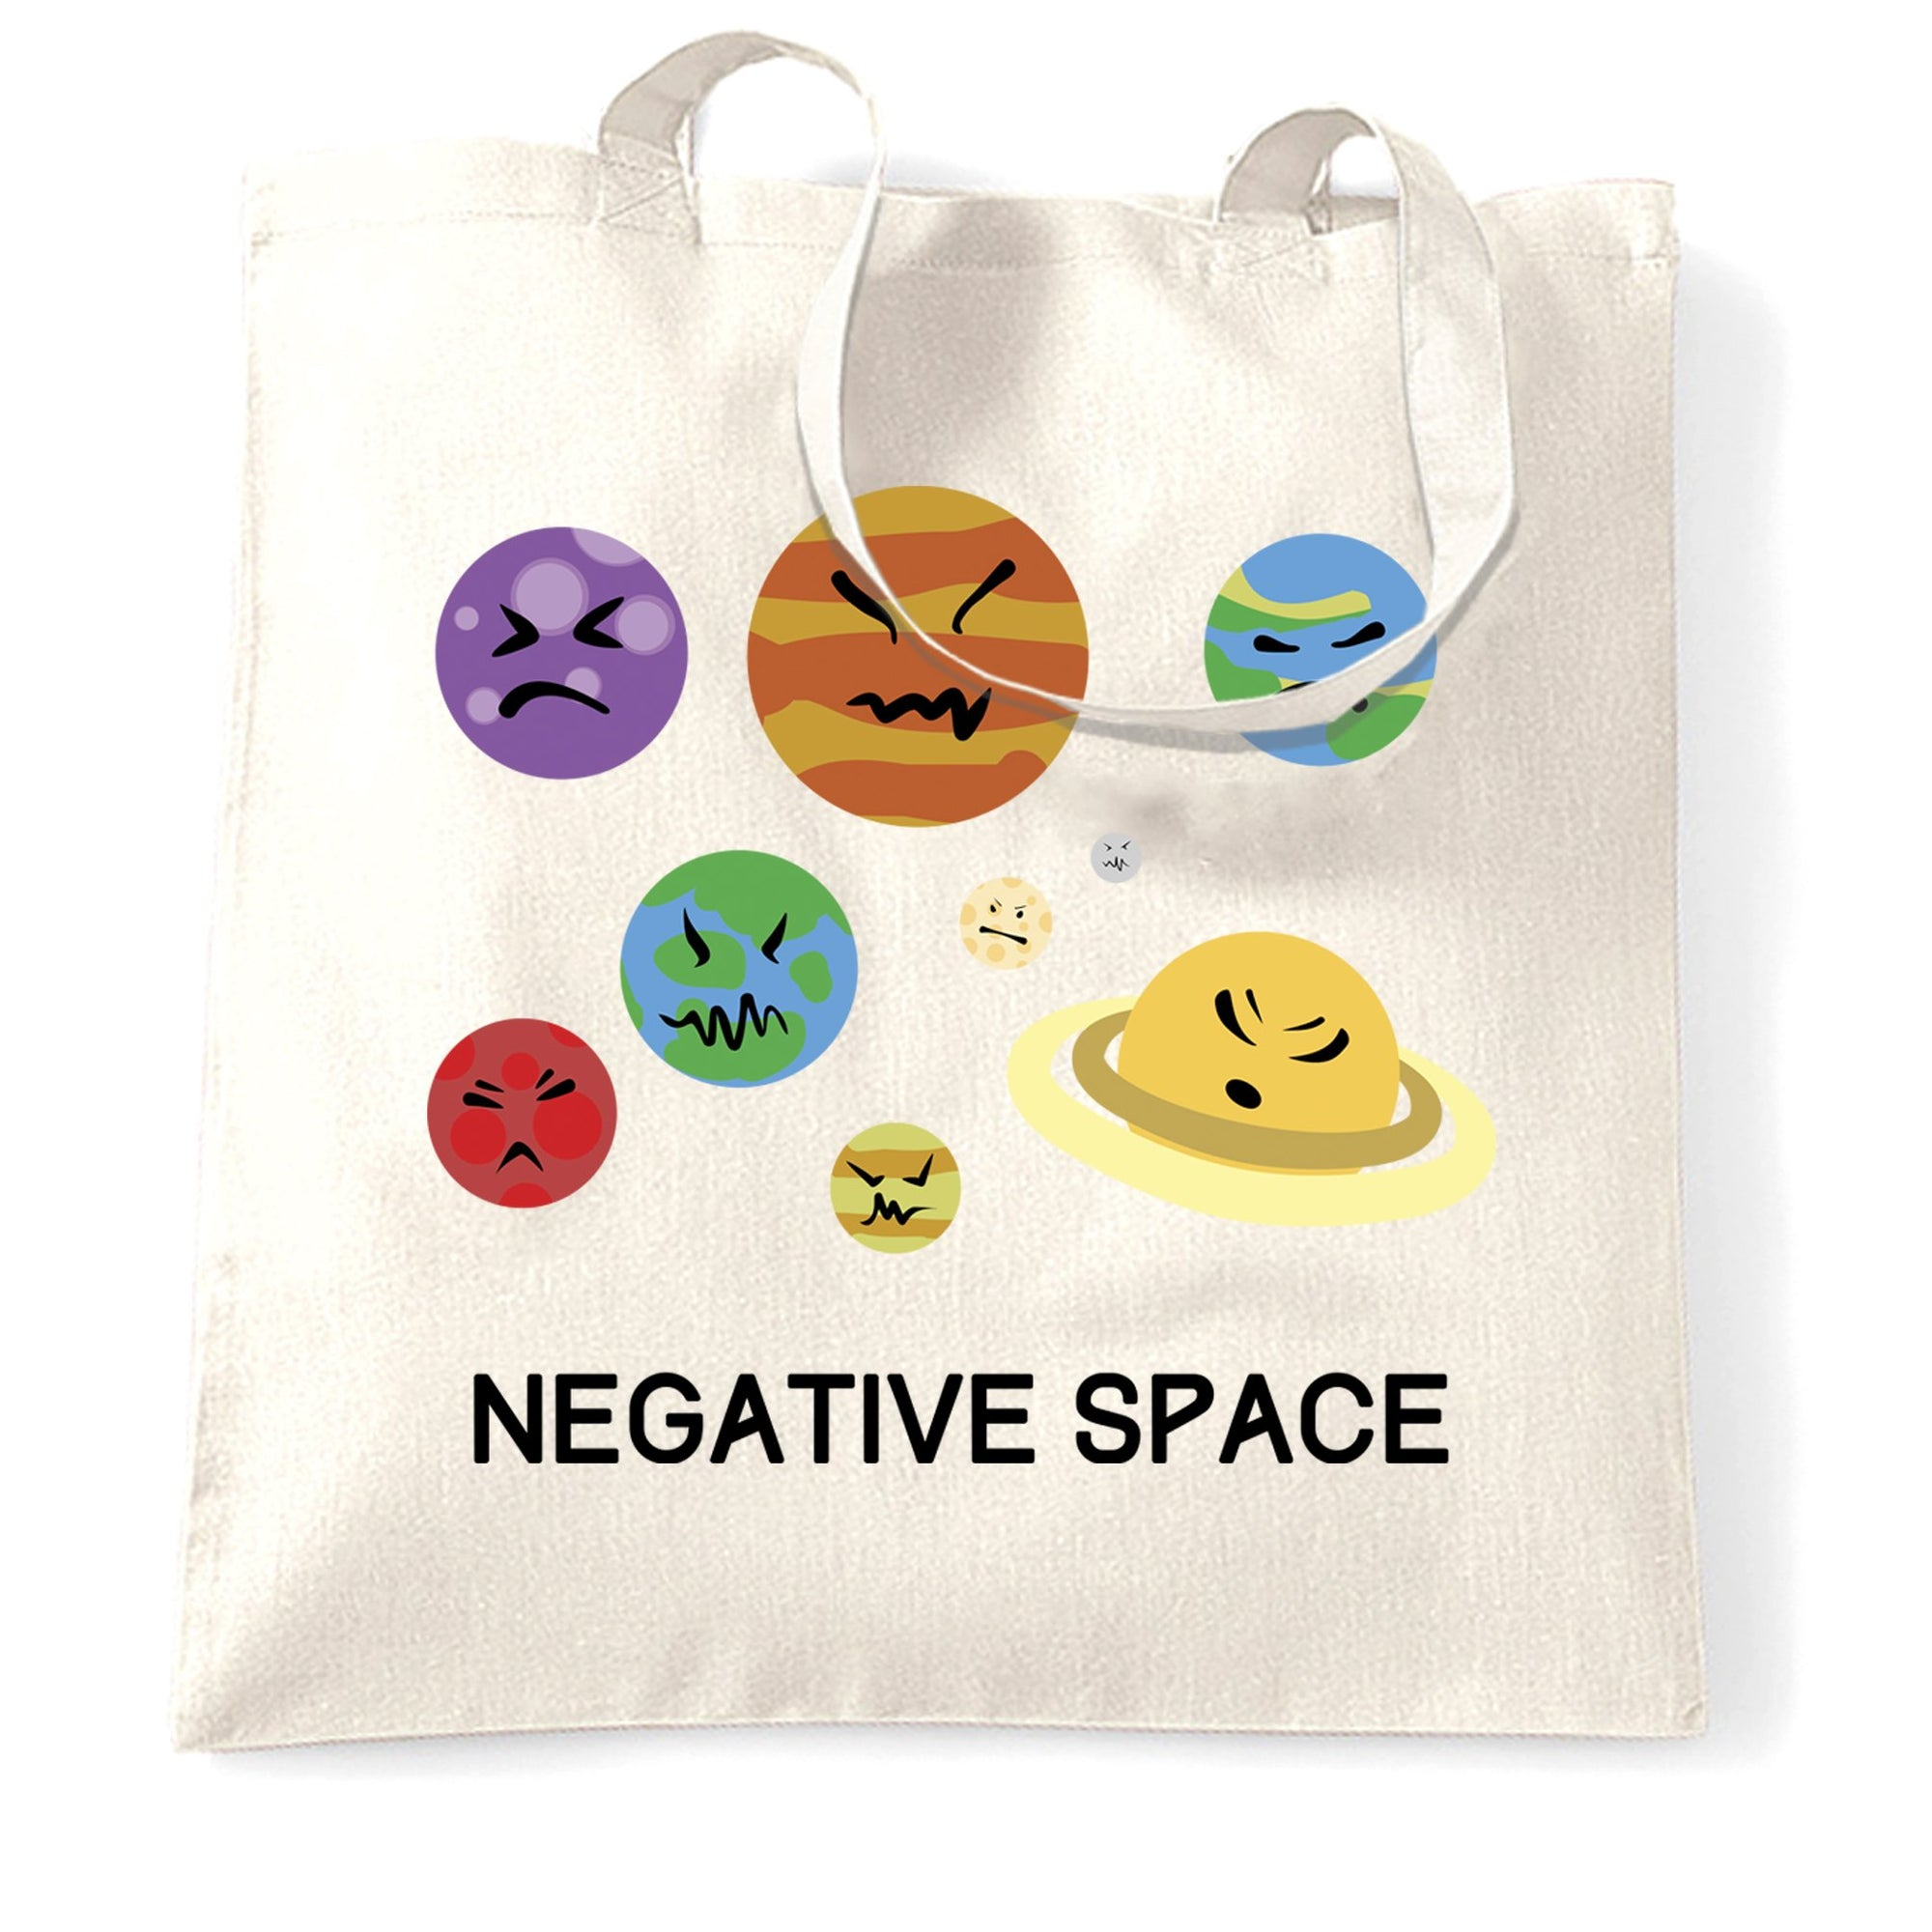 Solar System Joke Tote Bag Negative Space And Planets